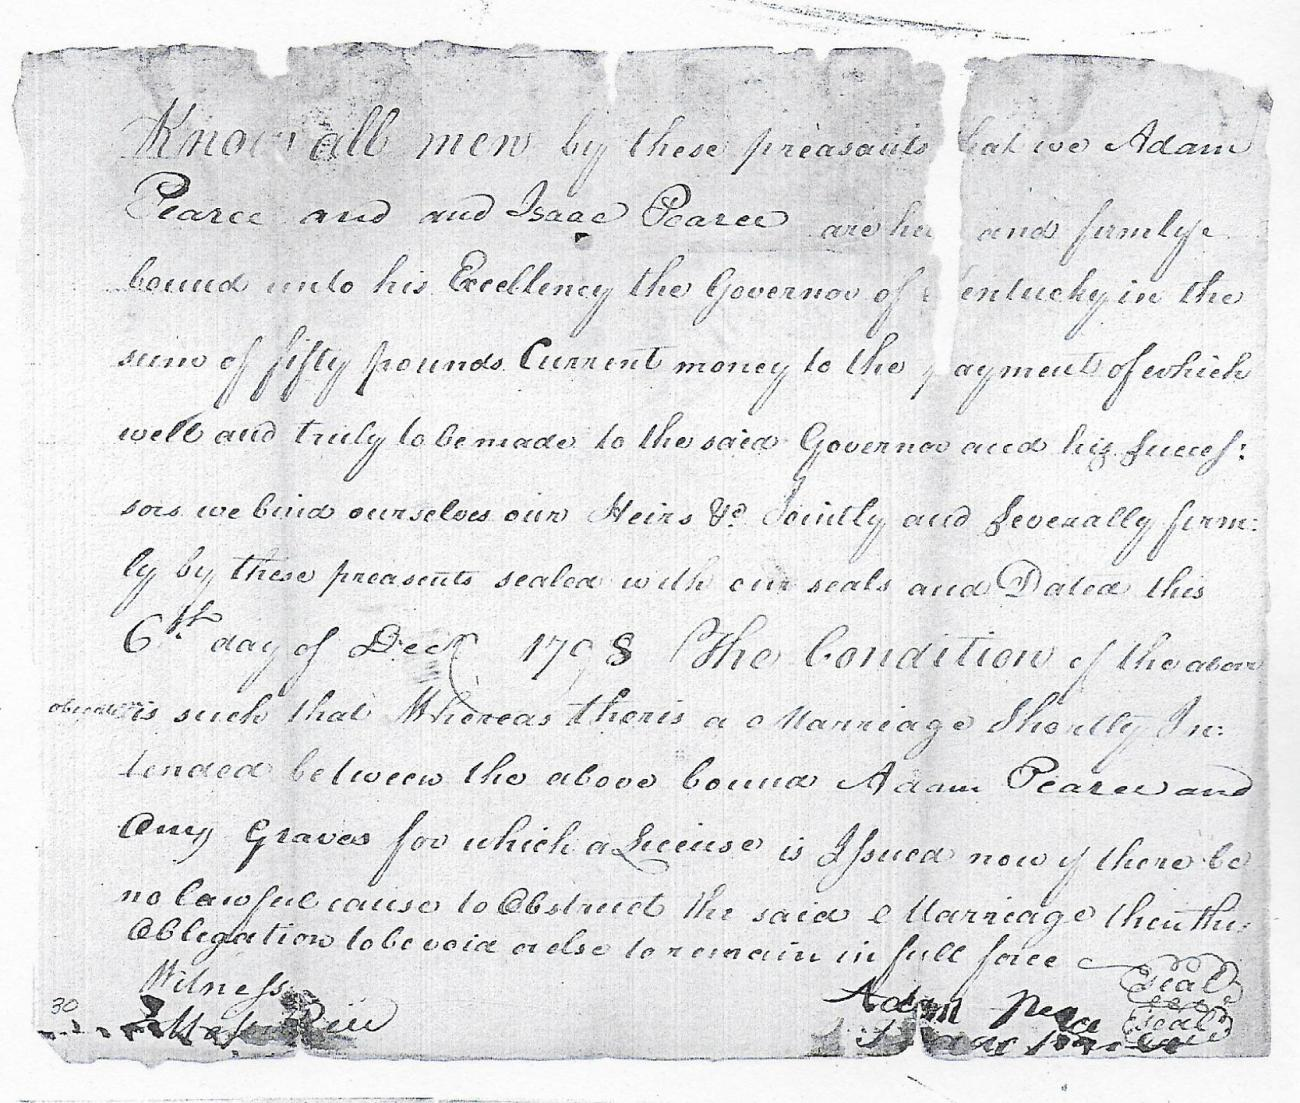 Amy Graves 1798 Marriage Bond